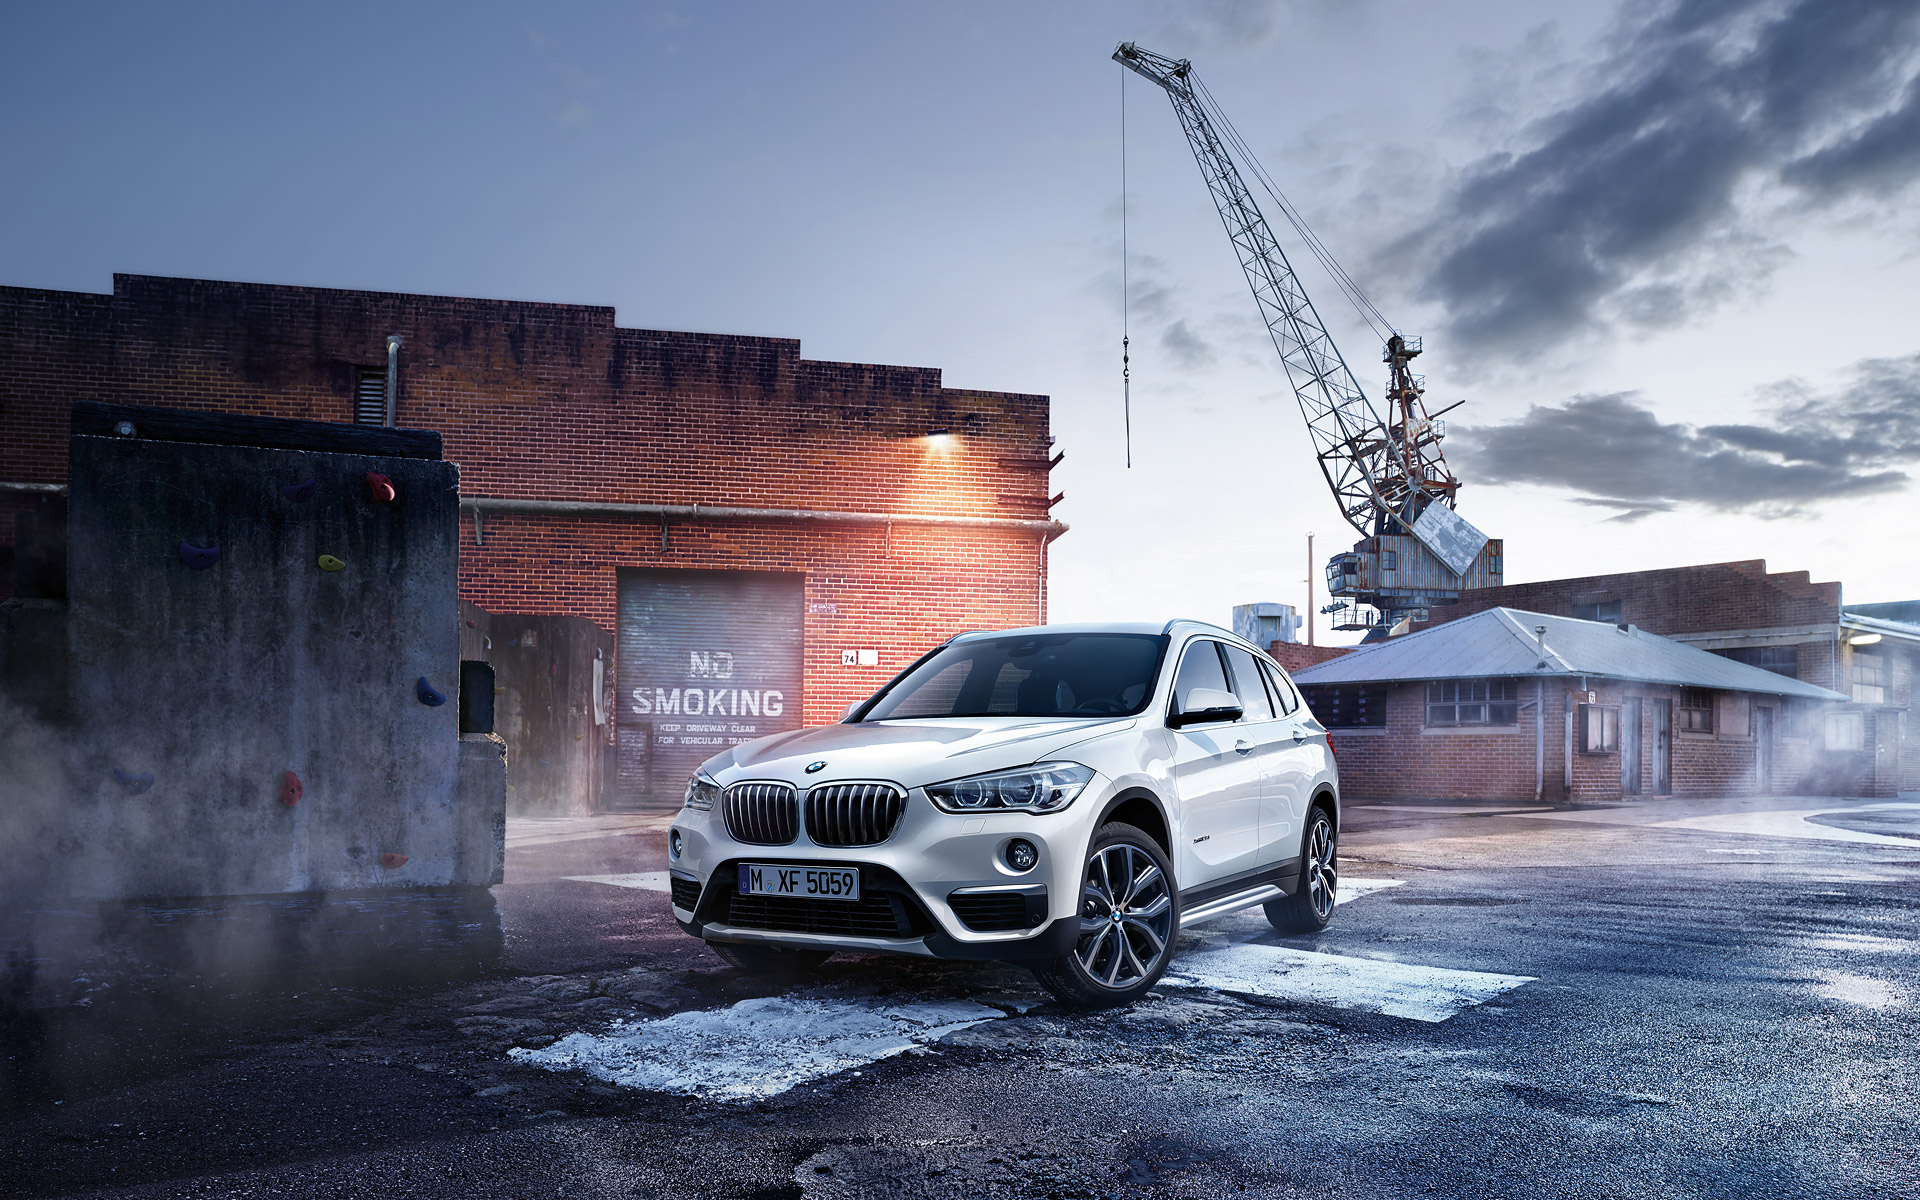 Introducing the all new 2016 BMW X1 (F48)